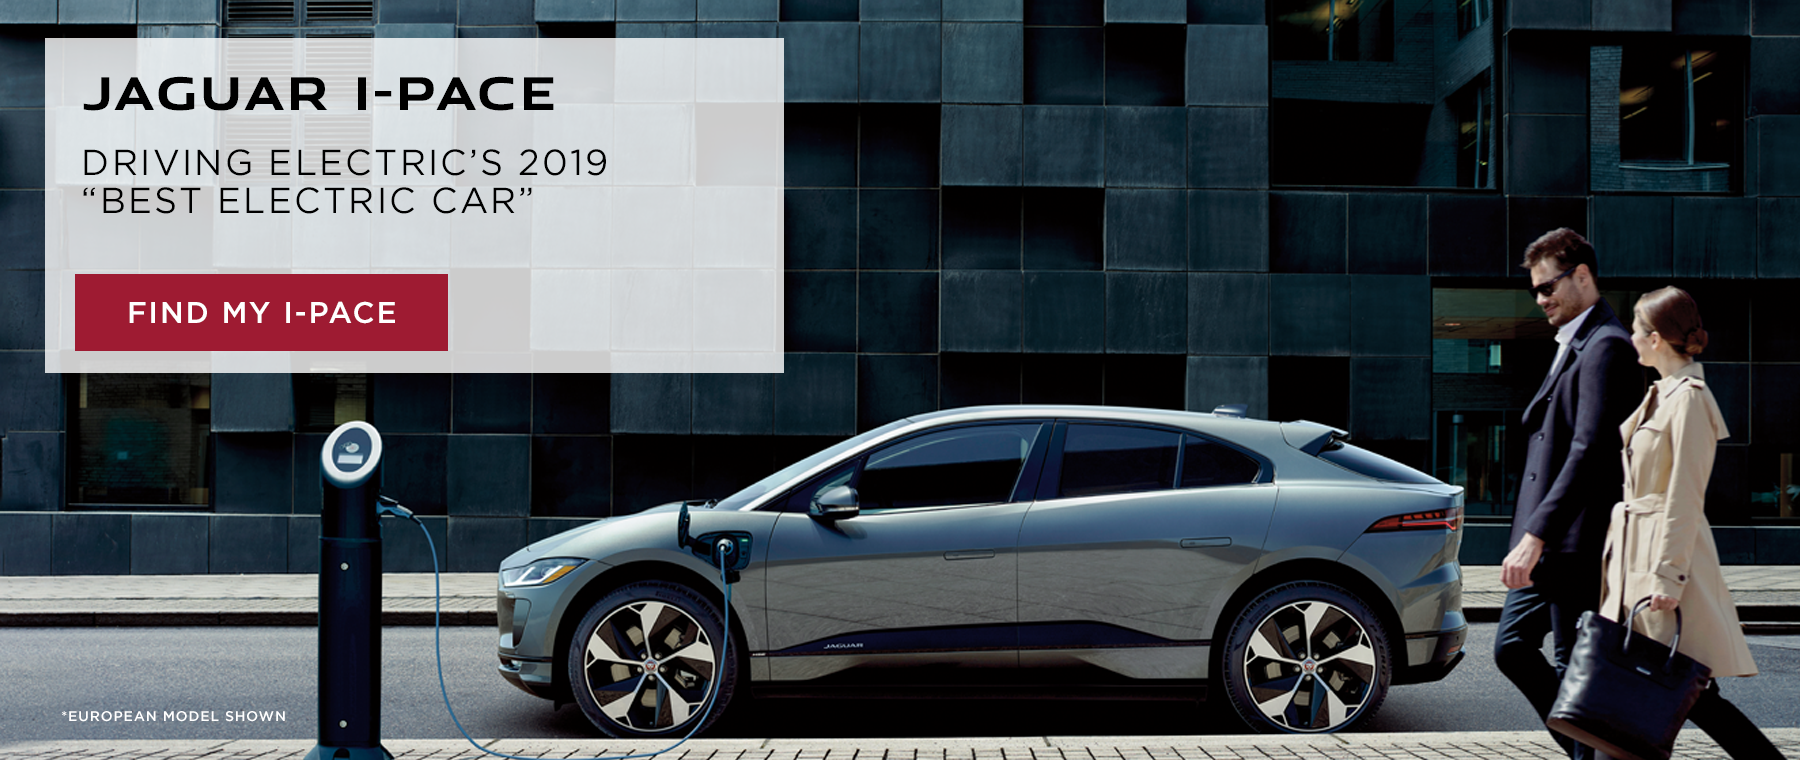 I-PACE Best Electric Car